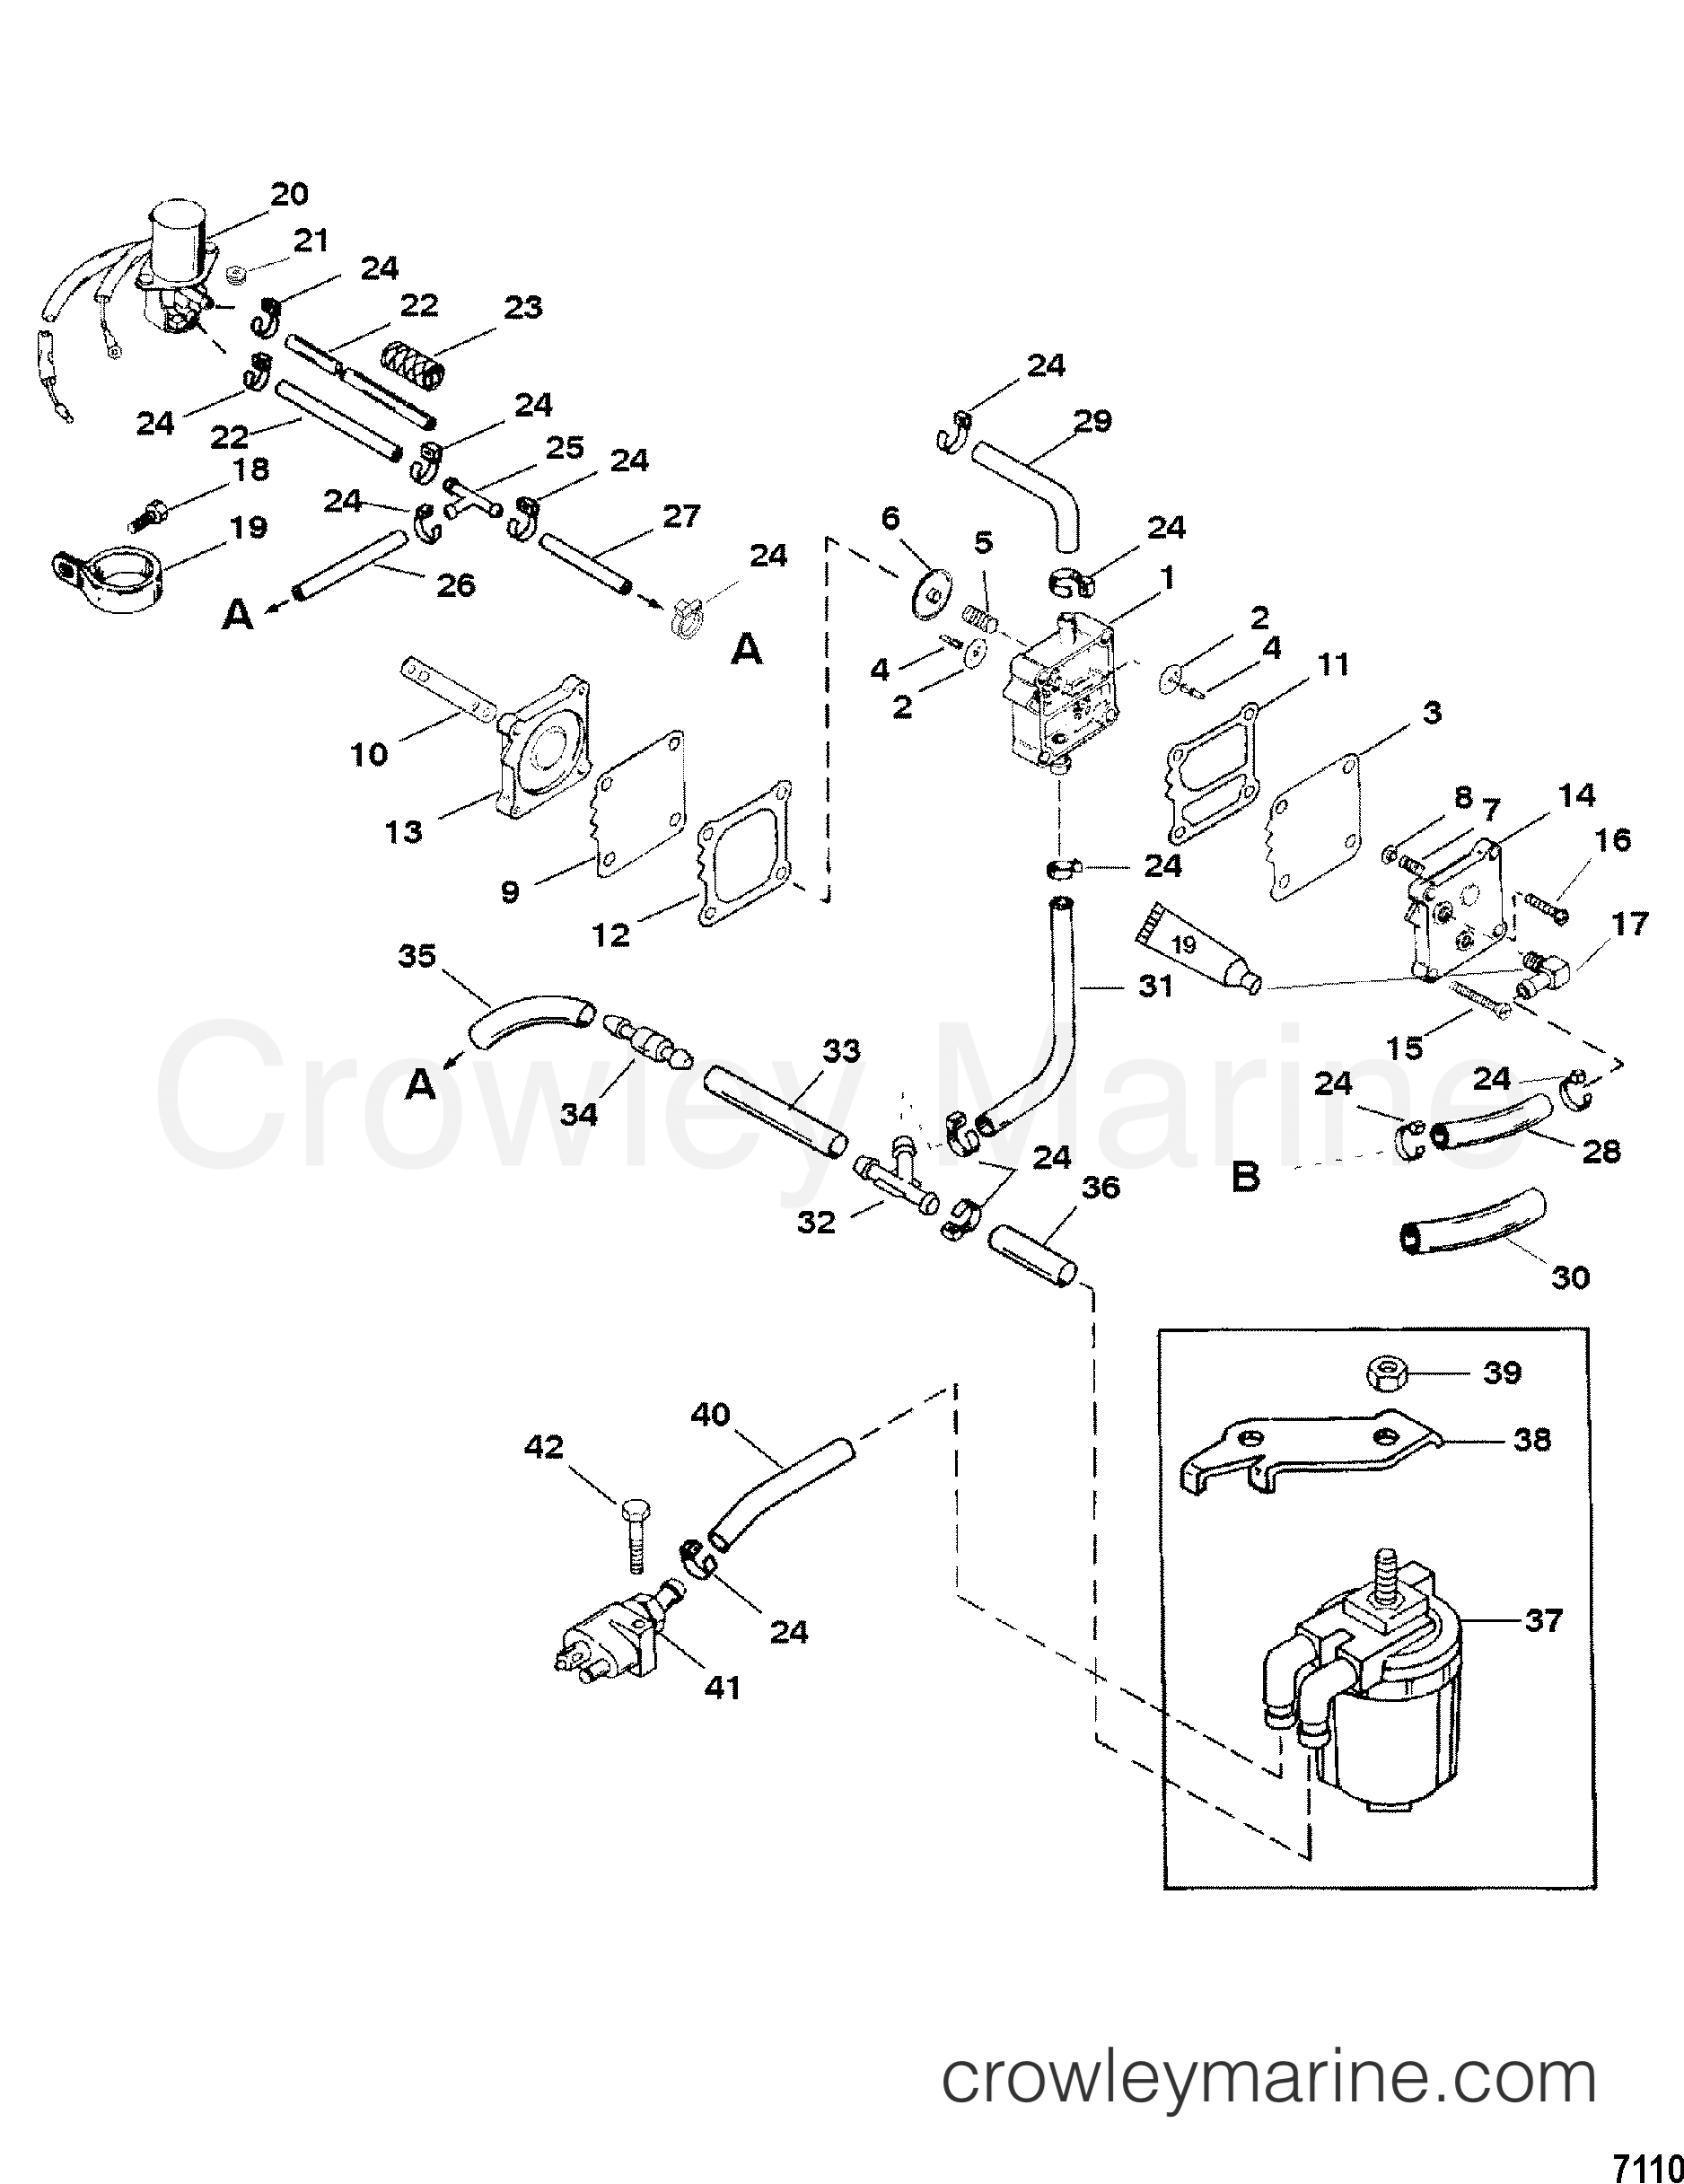 2000 Mariner Outboard 40 [EO] - 7041302JF - FUEL PUMP(ELECTRIC)(DESIGN I) section